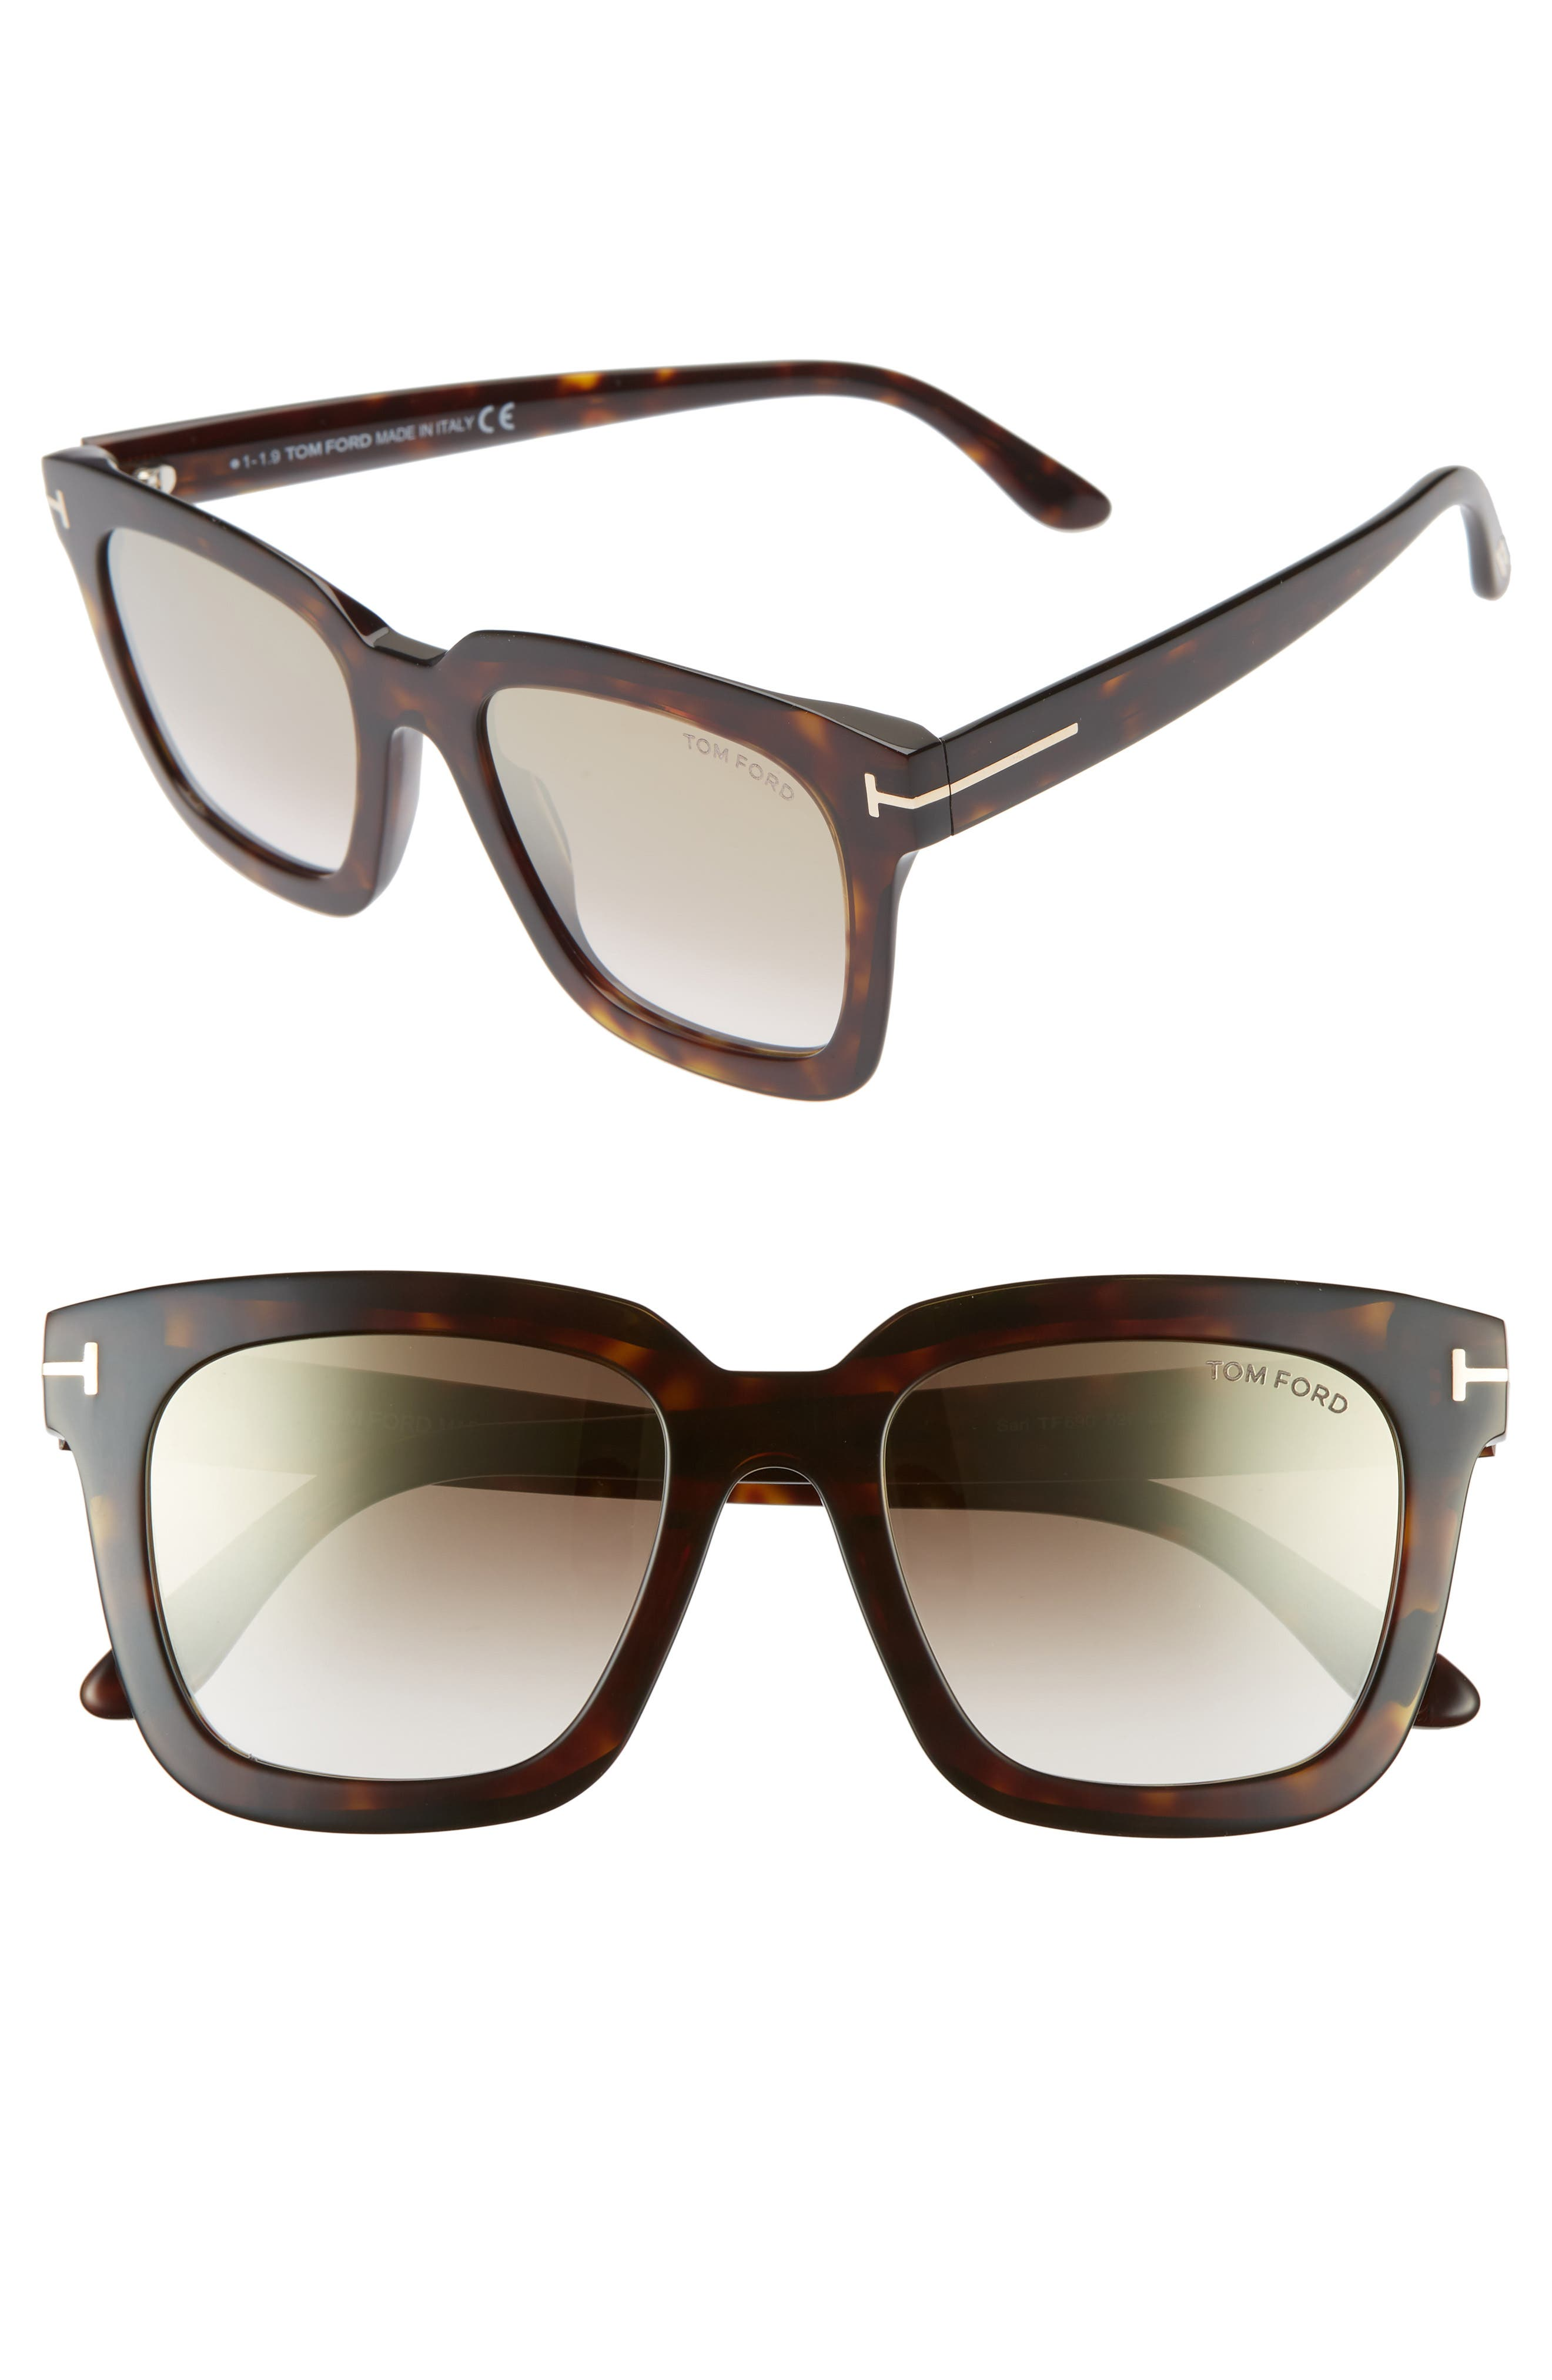 4ee76f8a674 Women s Tom Ford New Arrivals  Clothing